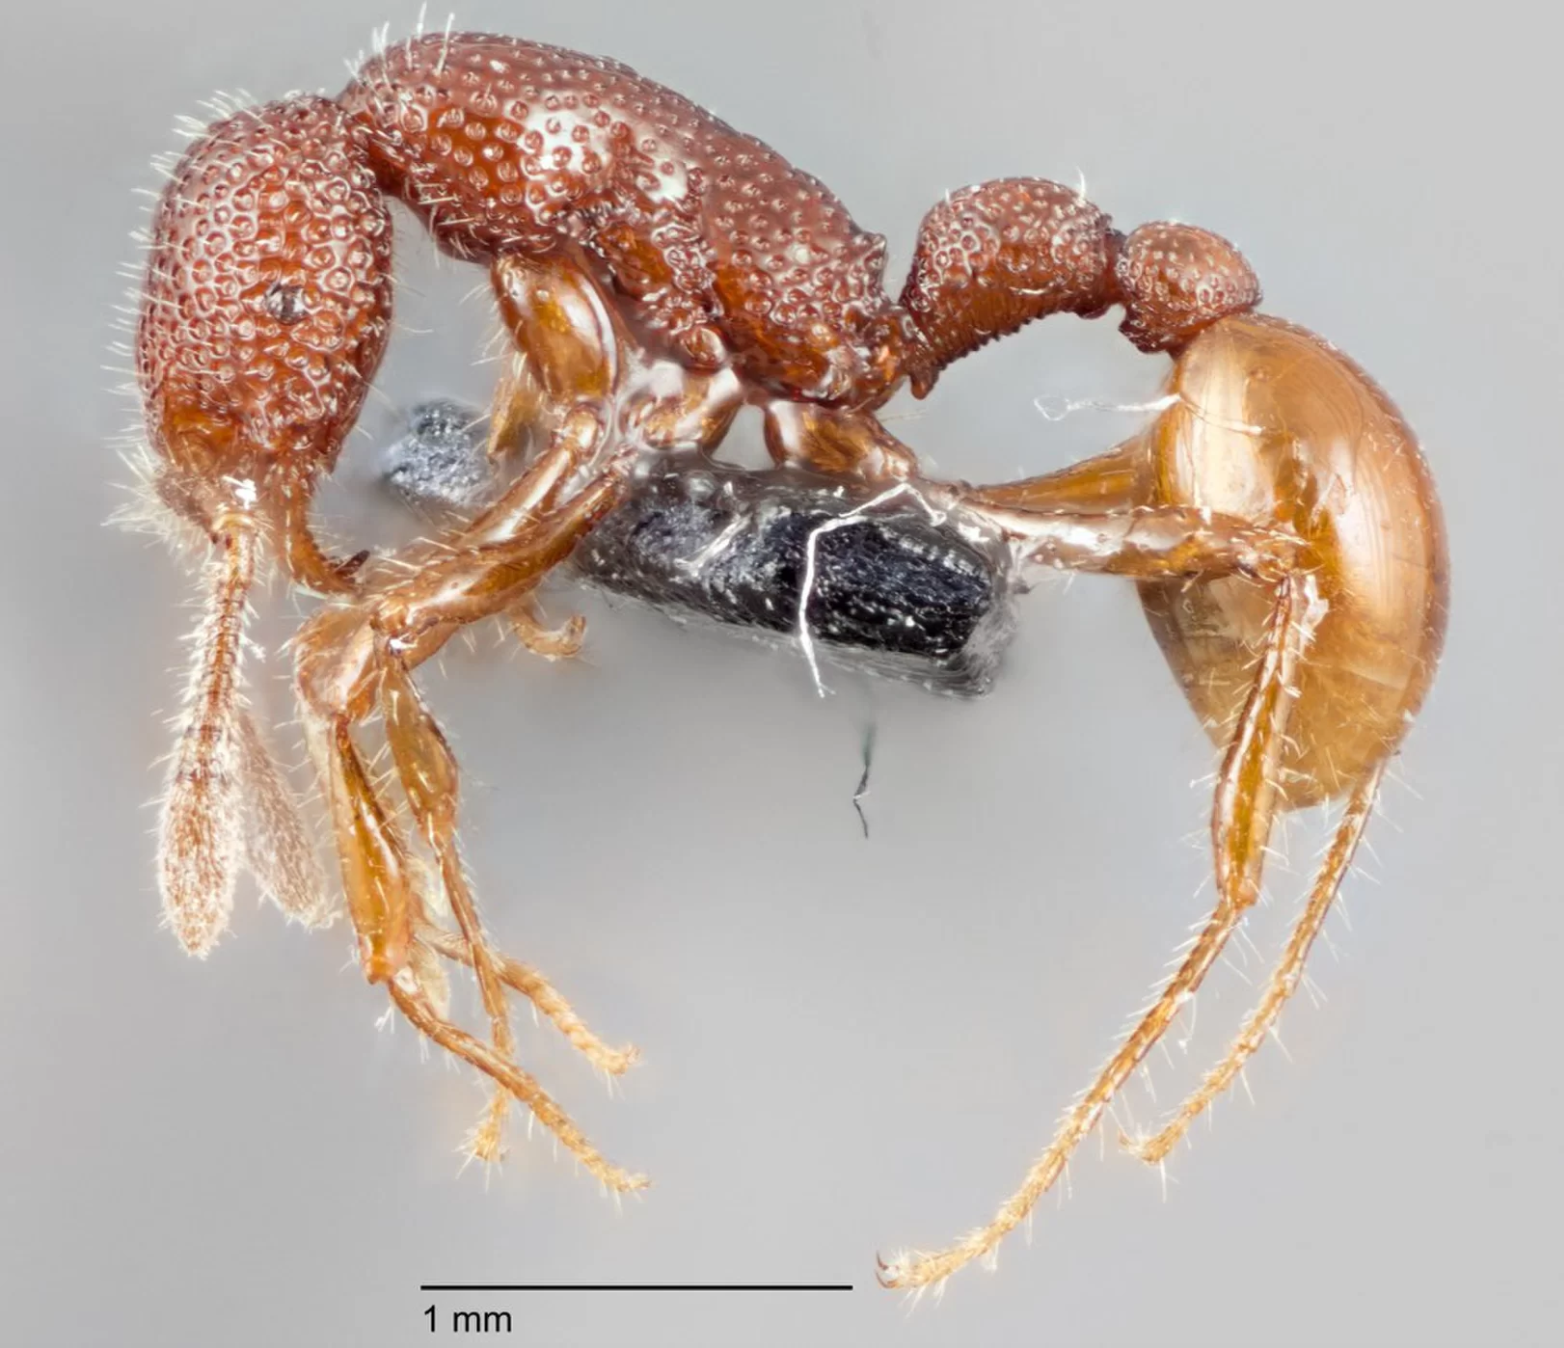 Rex' ants discovered in Singapore